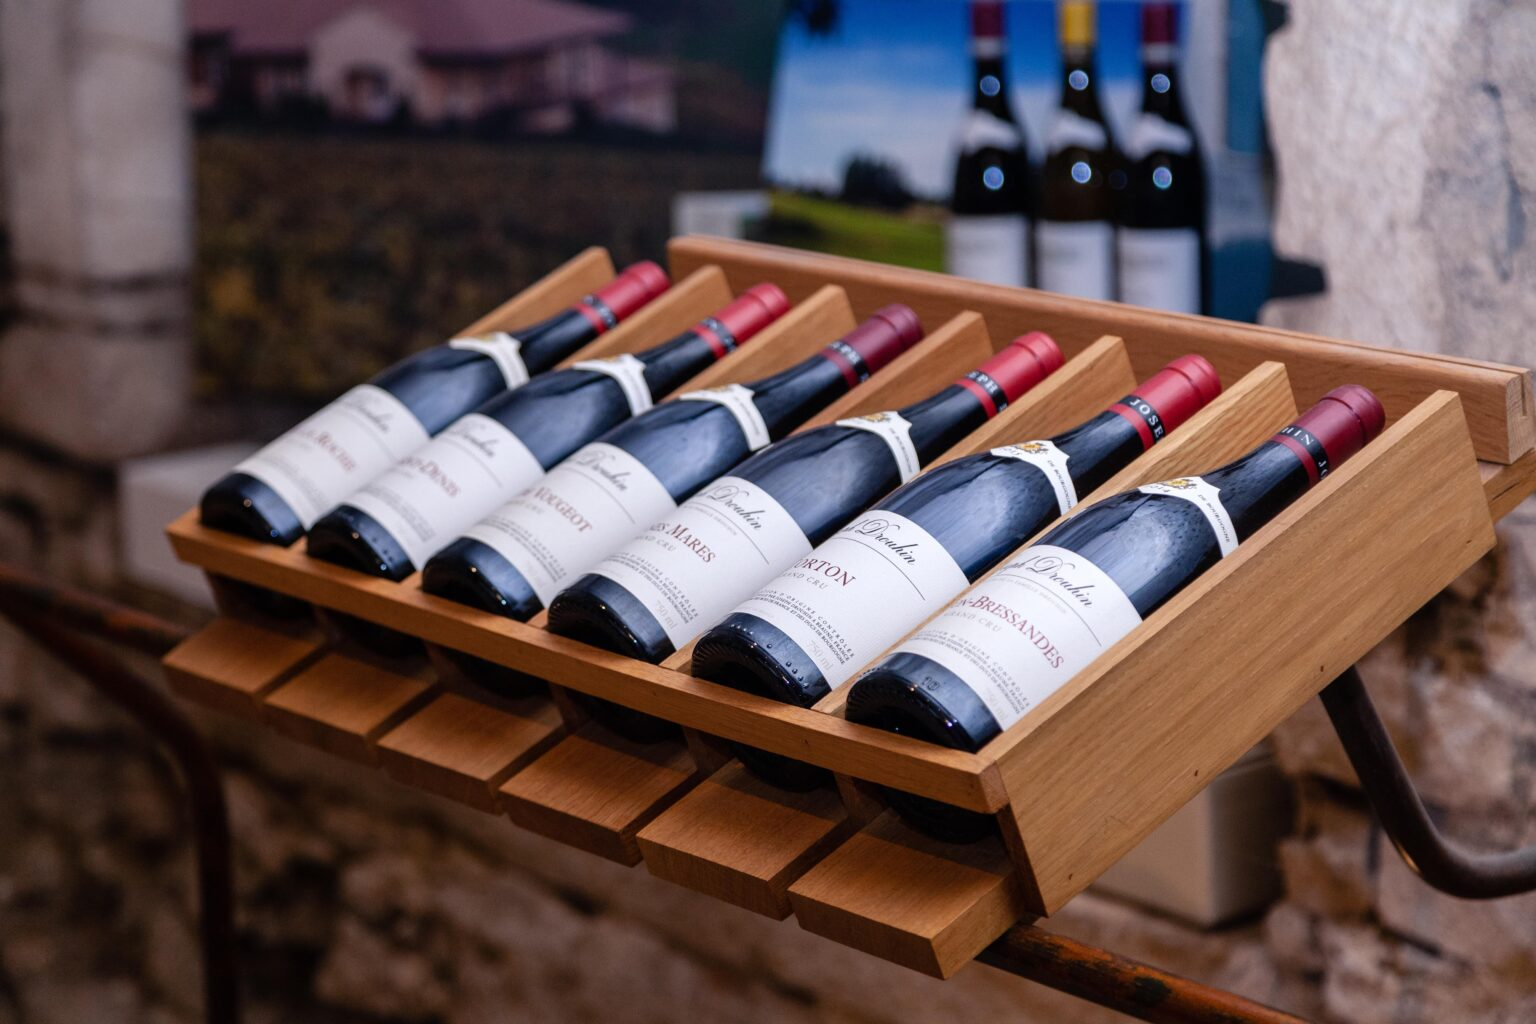 b2b marketing ideas for winery suppliers